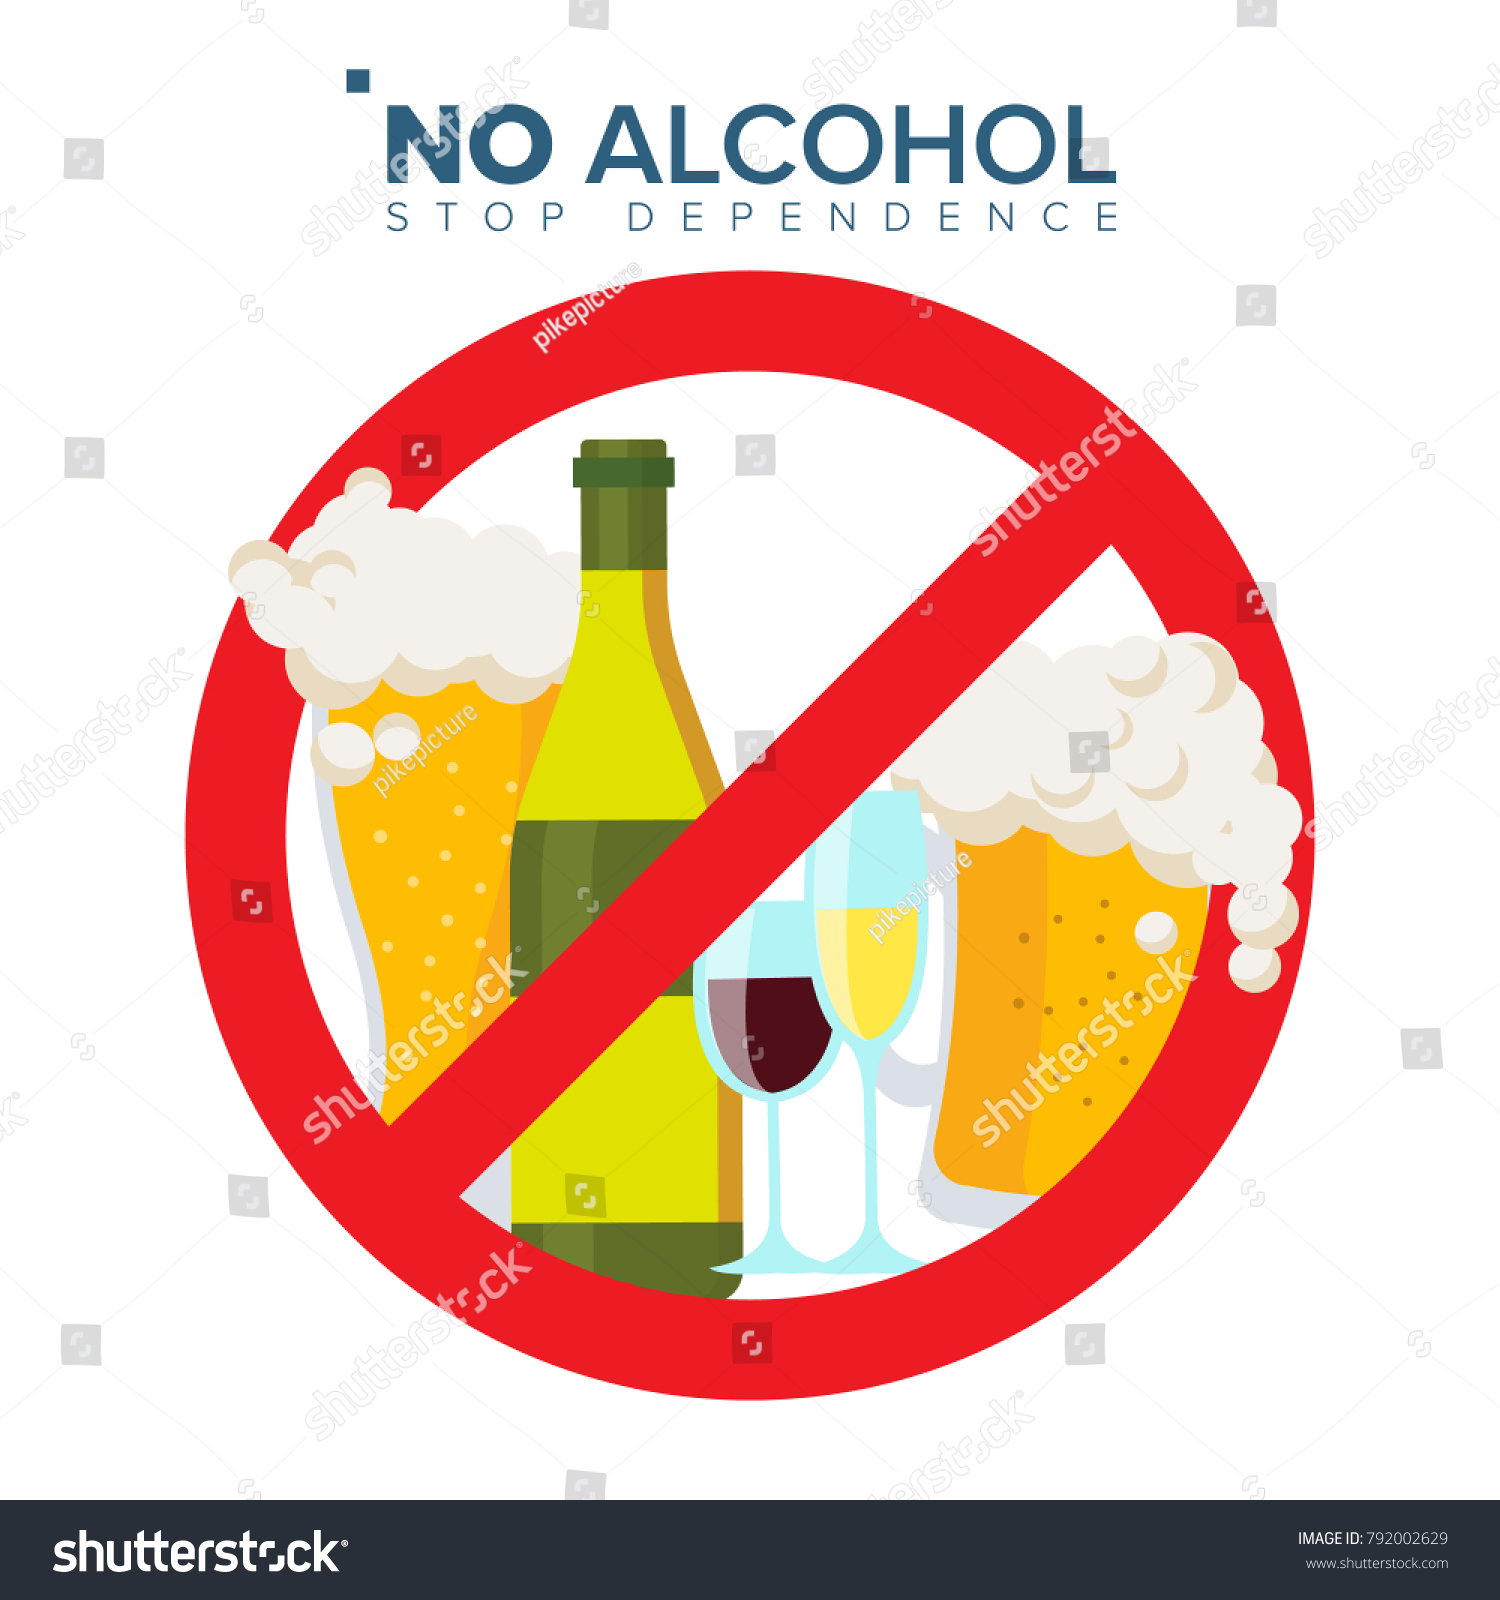 No Alcohol Sign Vector. Strike Through Red Circle. Prohibiting Alcohol Beverages. Beer Beverage Stop Sign. Bad Stamp.  Isolated Flat Cartoon Illustration